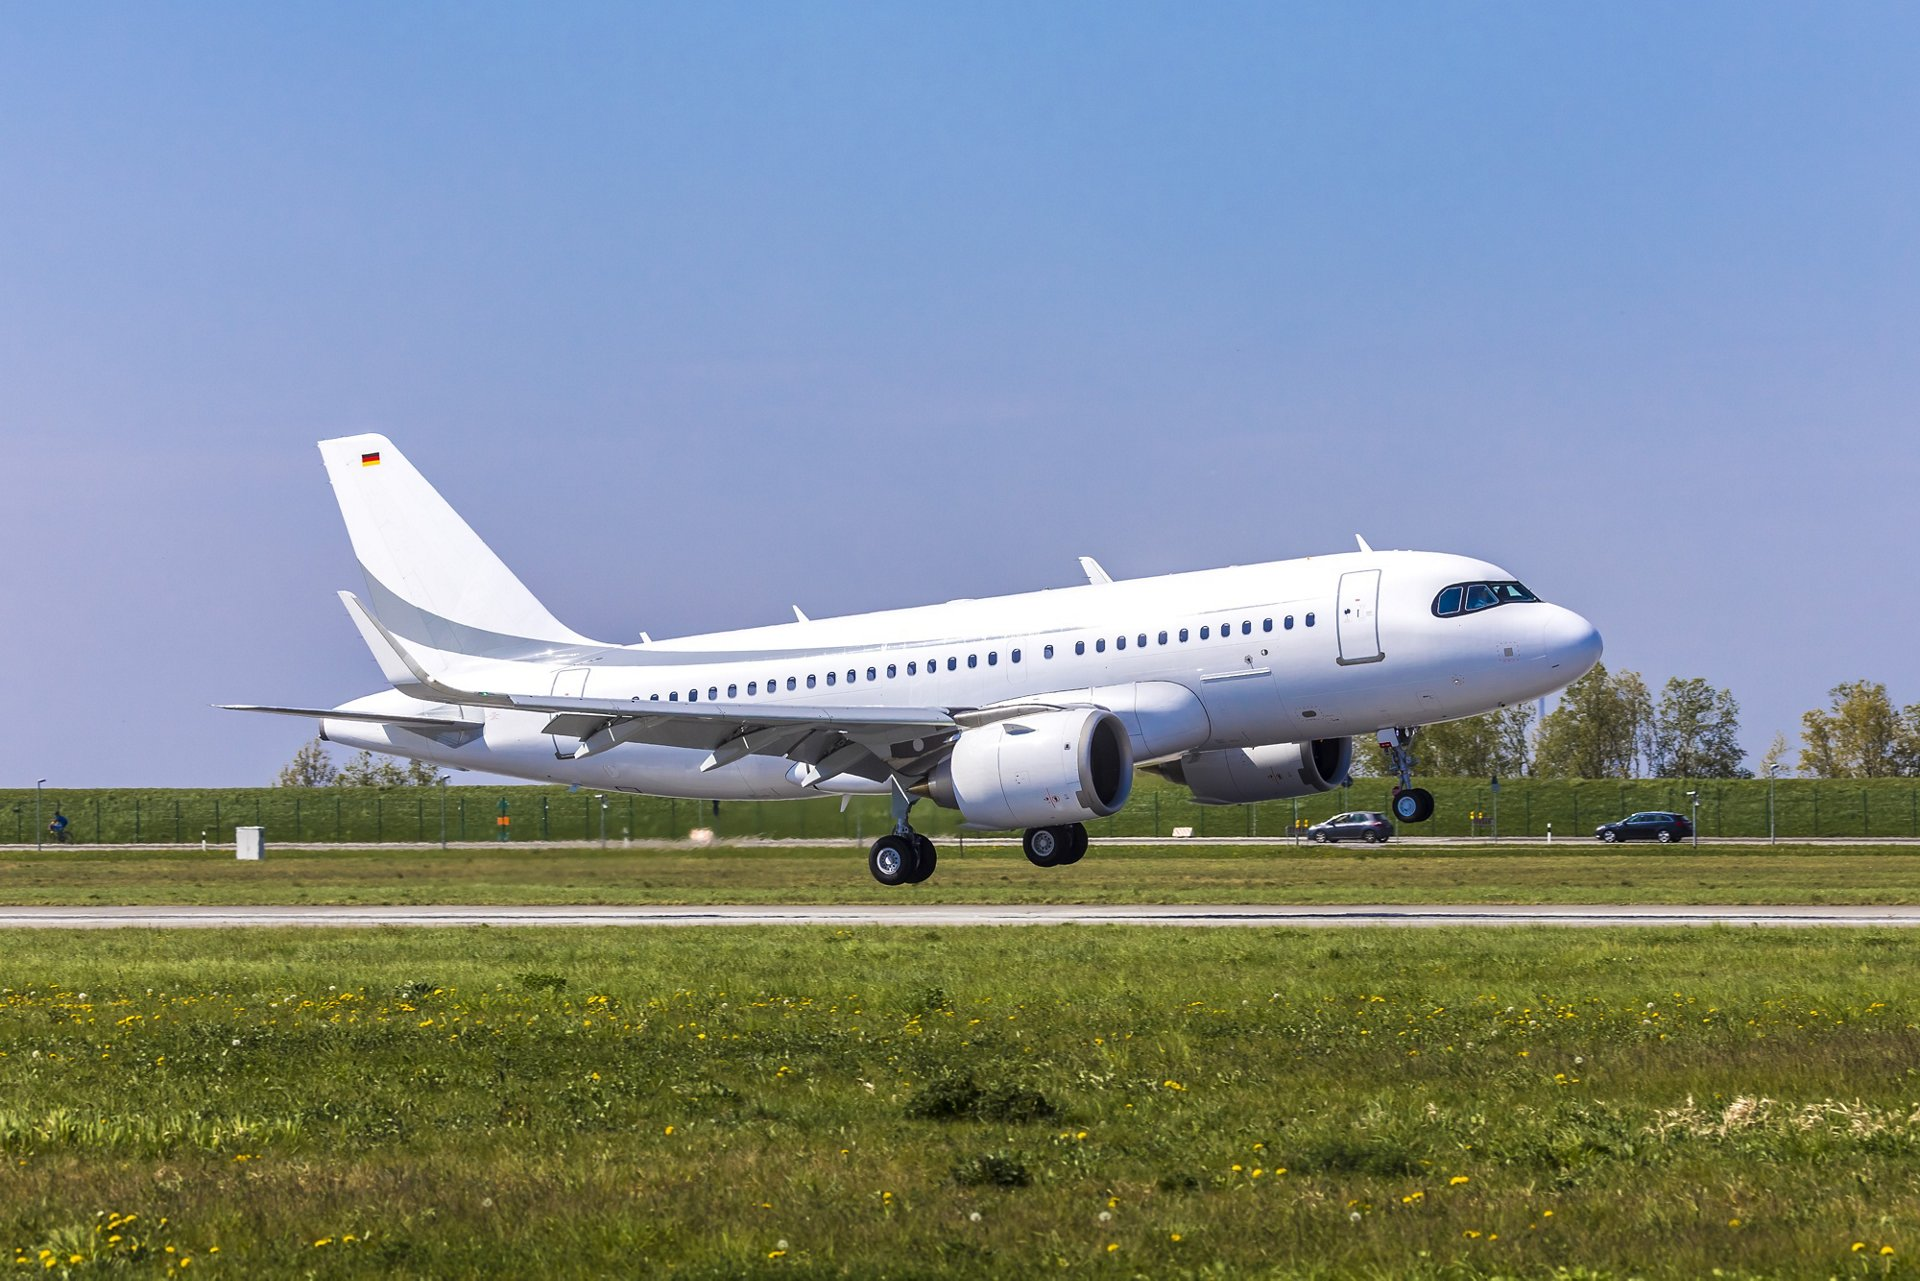 The maiden flight of Airbus' ACJ319neo, which lasted one hour and 55 min., kicked off a short flight-test programme to verify its corporate jet features